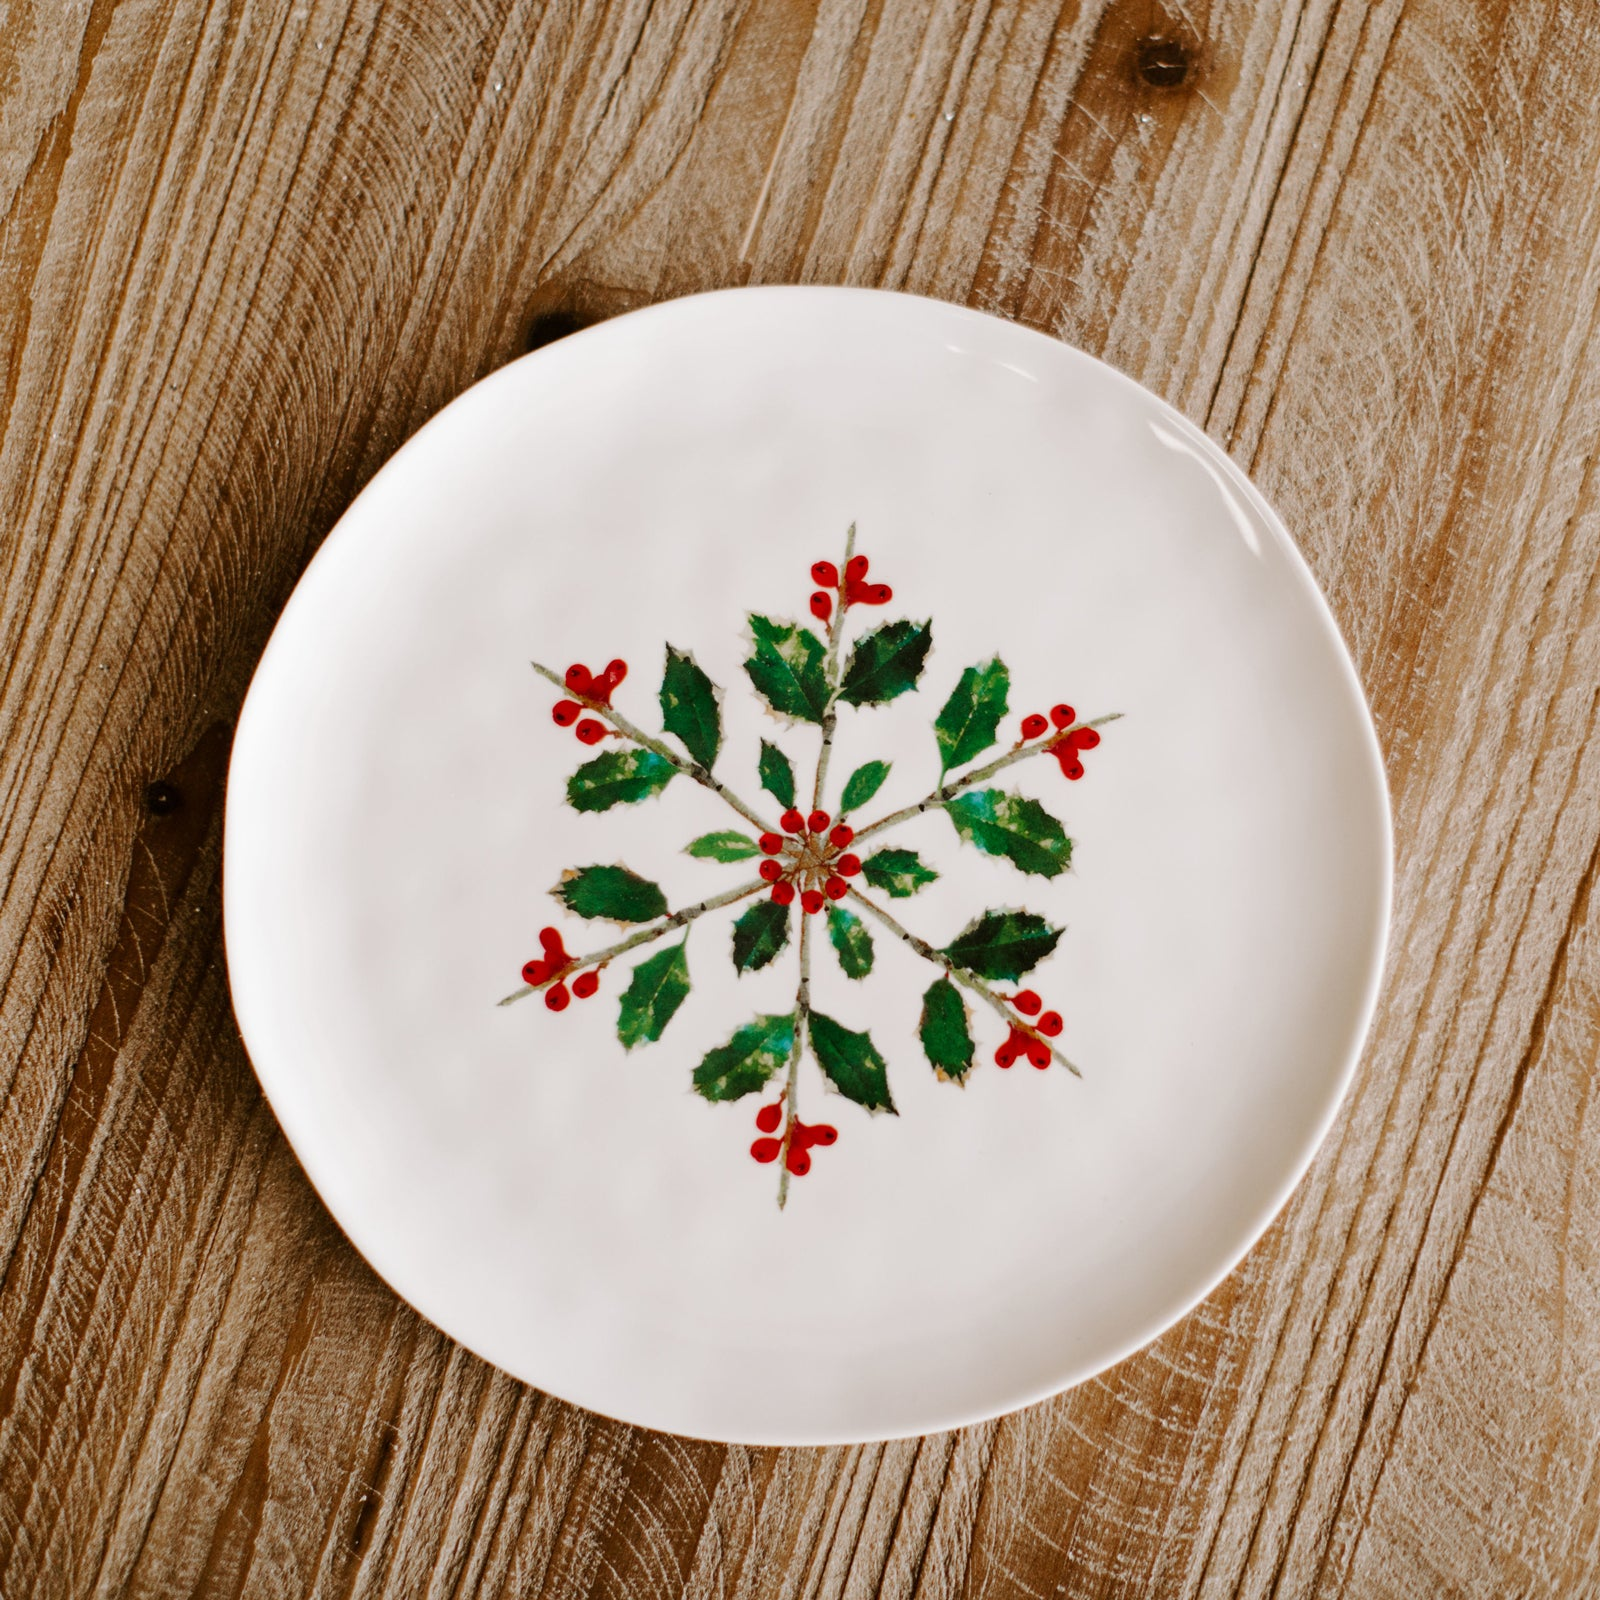 A 9 inch diameter winter plate with a pattern of twigs, Holly leaves and berries forming a snowflake type of pattern resting on a Christmas dinner table